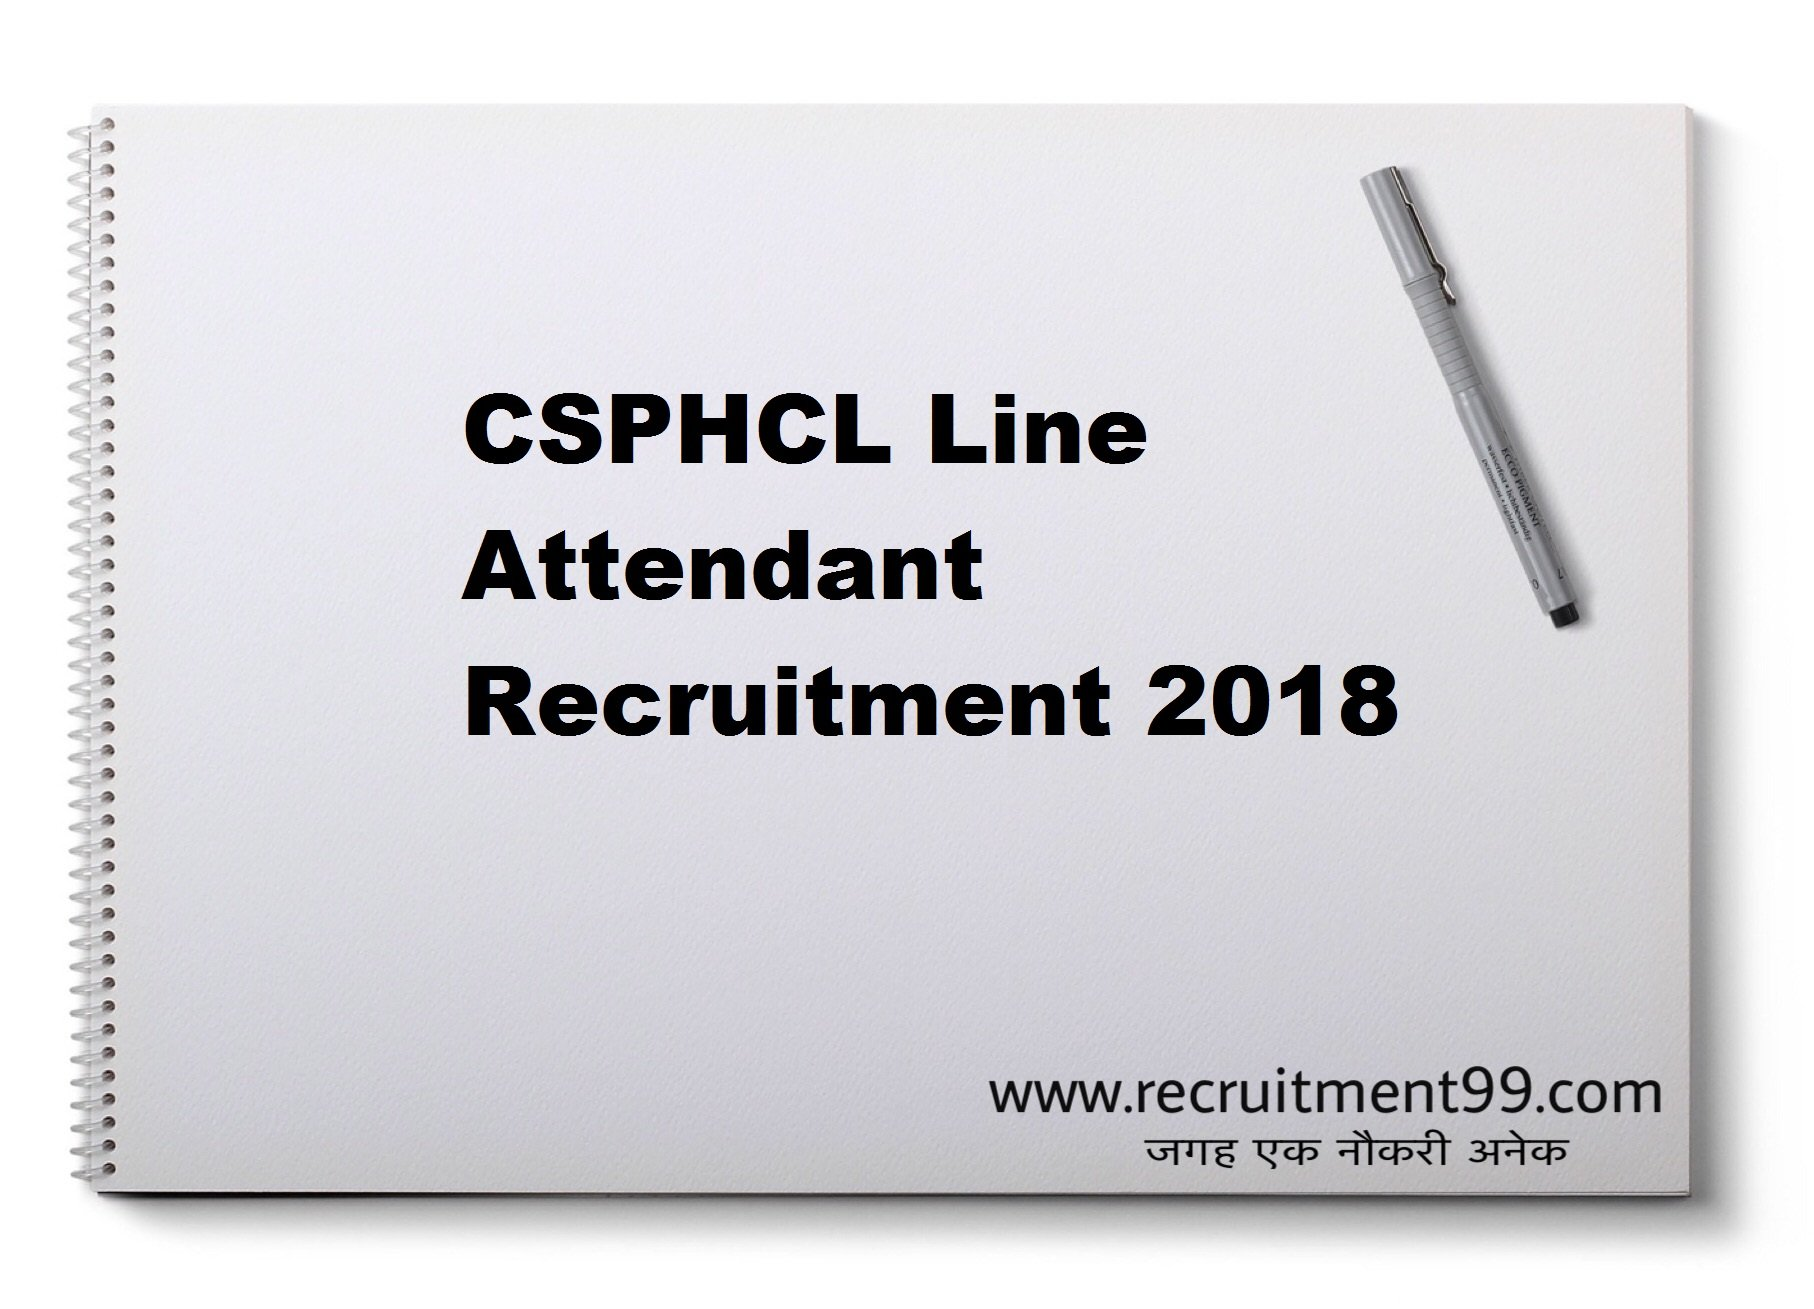 CSPHCL Line Attendant Recruitment Admit Card Result 2018